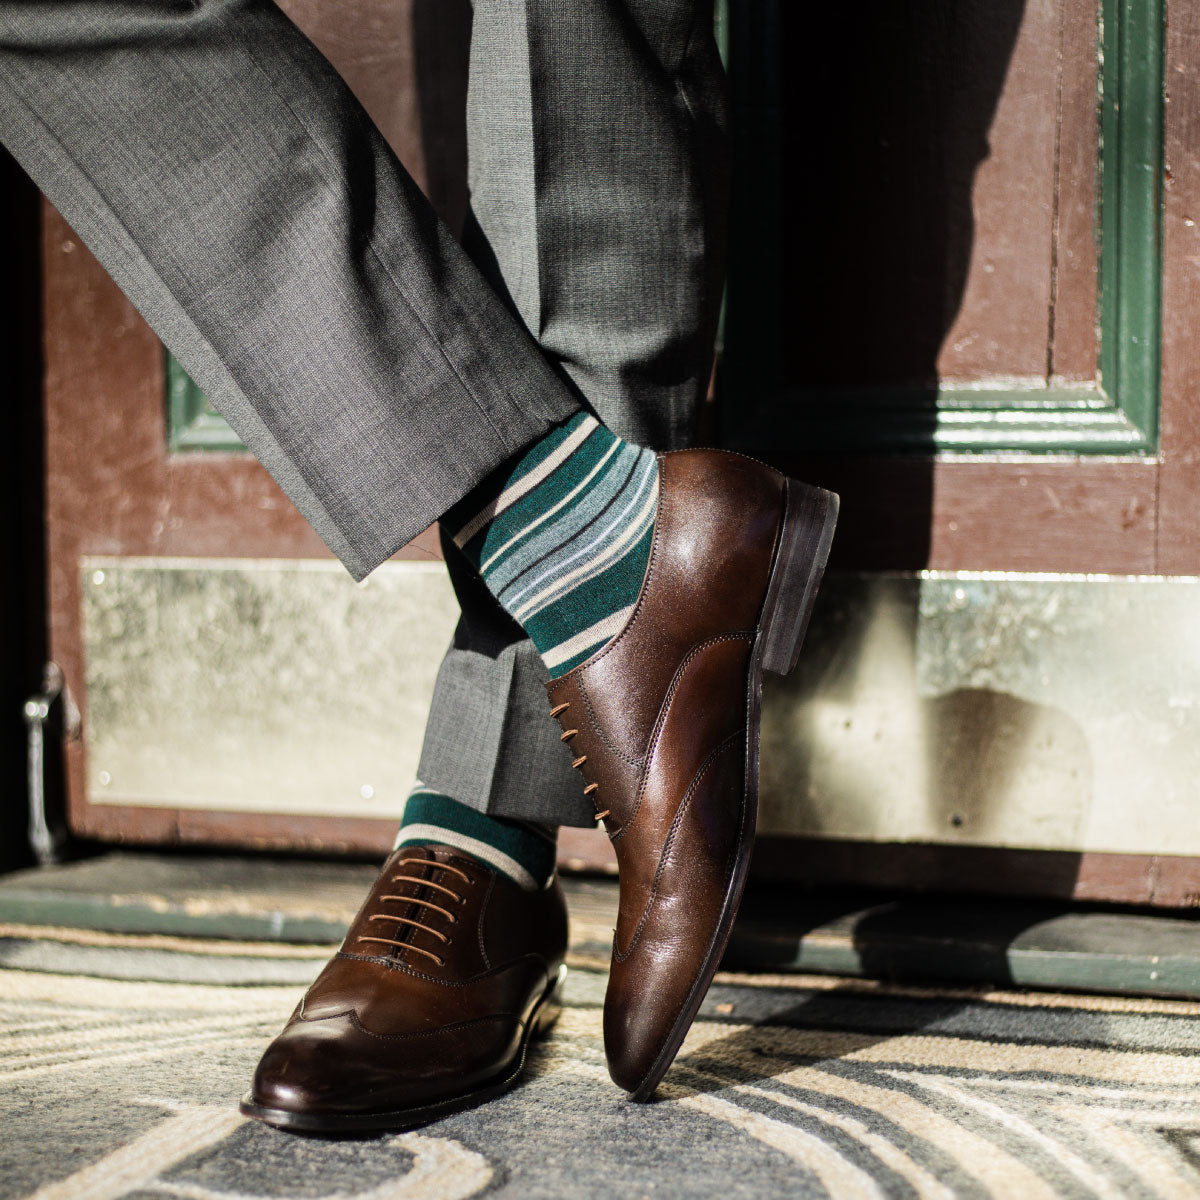 man wearing green, taupe, and tan striped dress socks